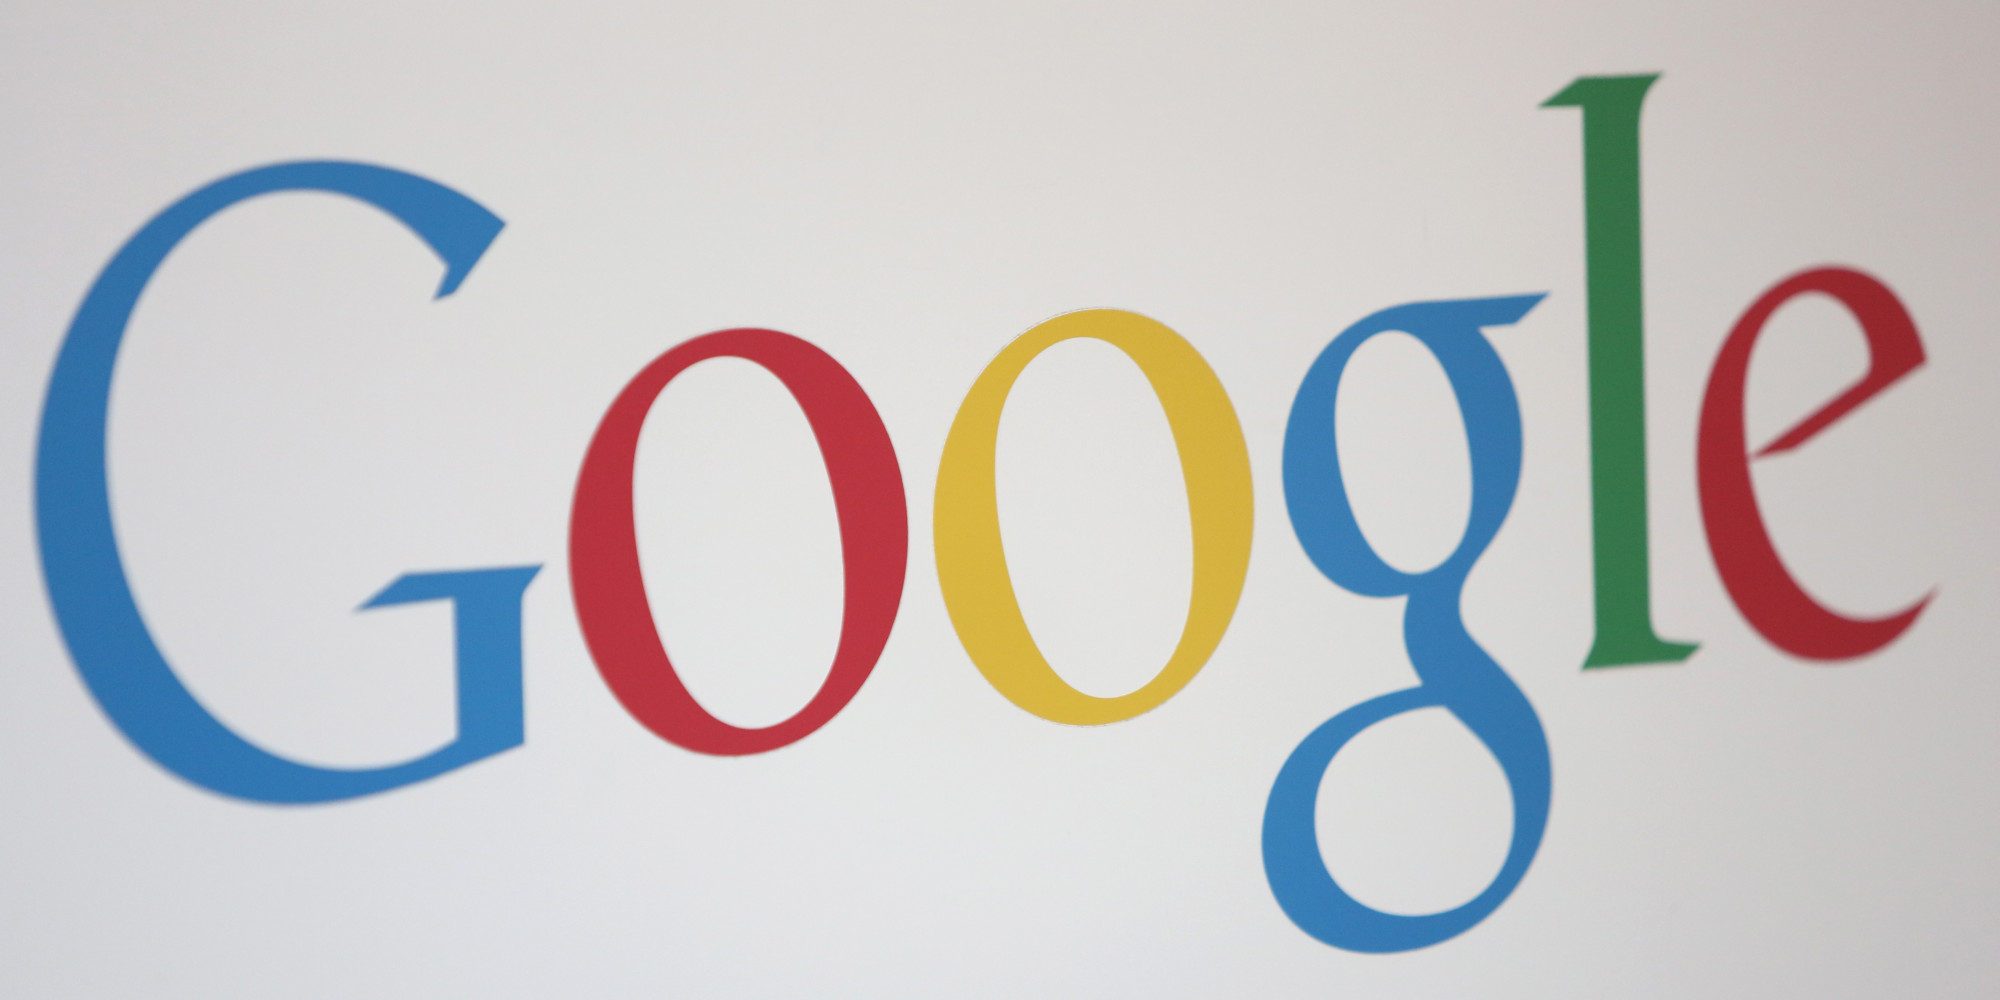 Google Privacy Policy >> Google To Change Its Privacy Policy | HuffPost